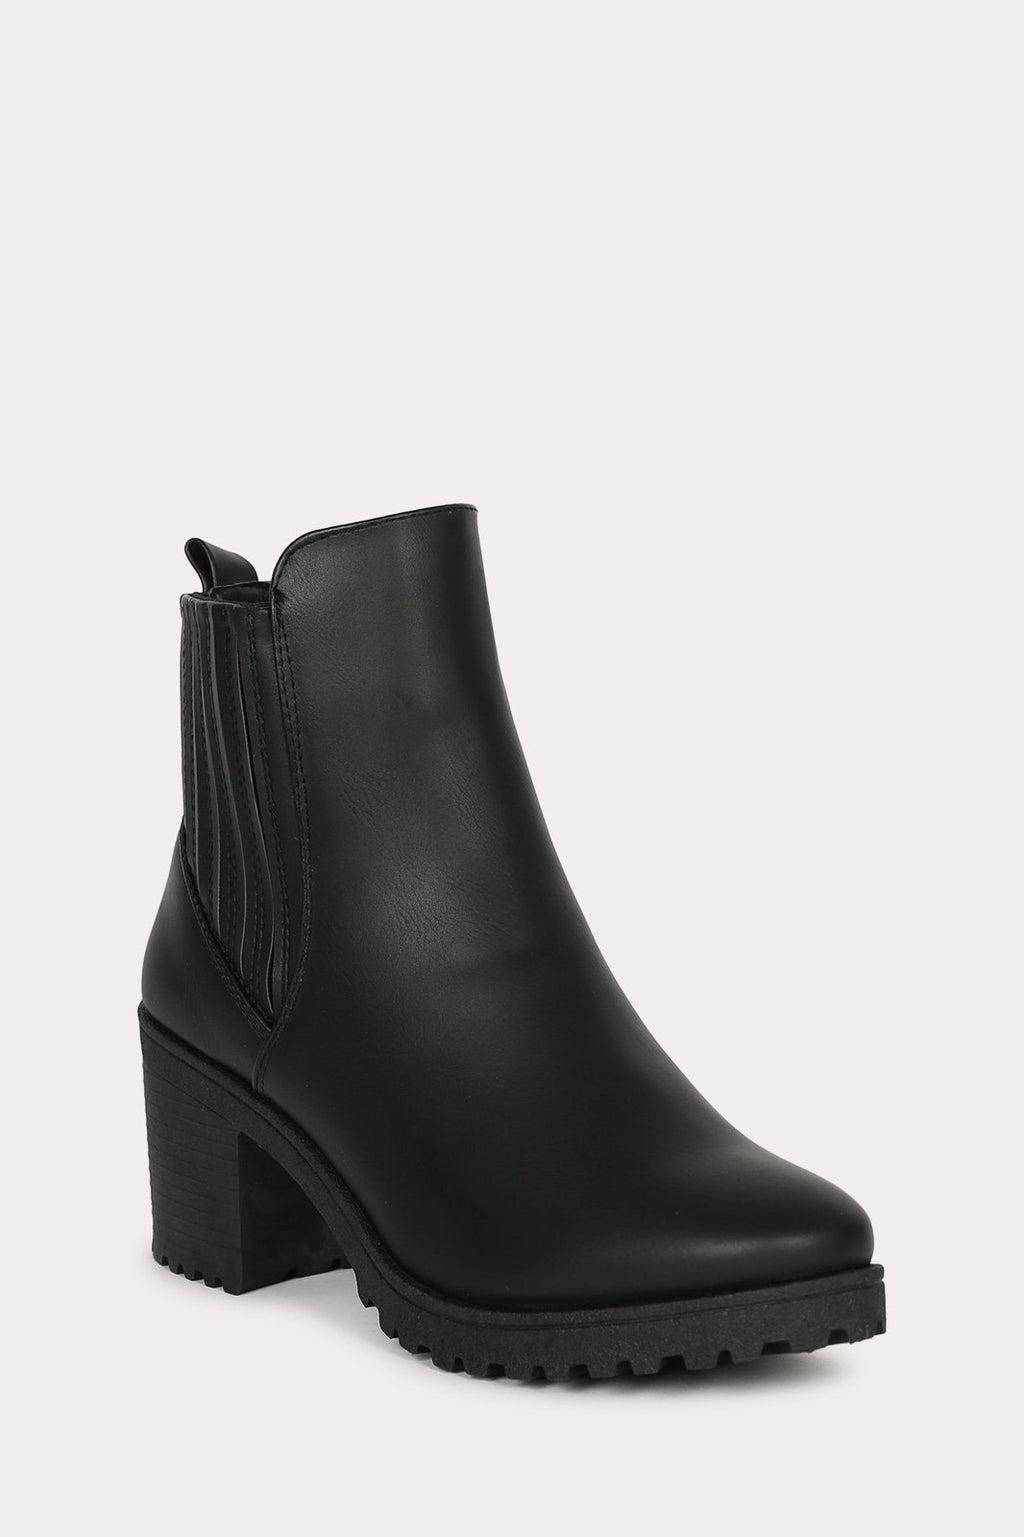 Bad Reputation - Black Lug Sole Chelsea Booties